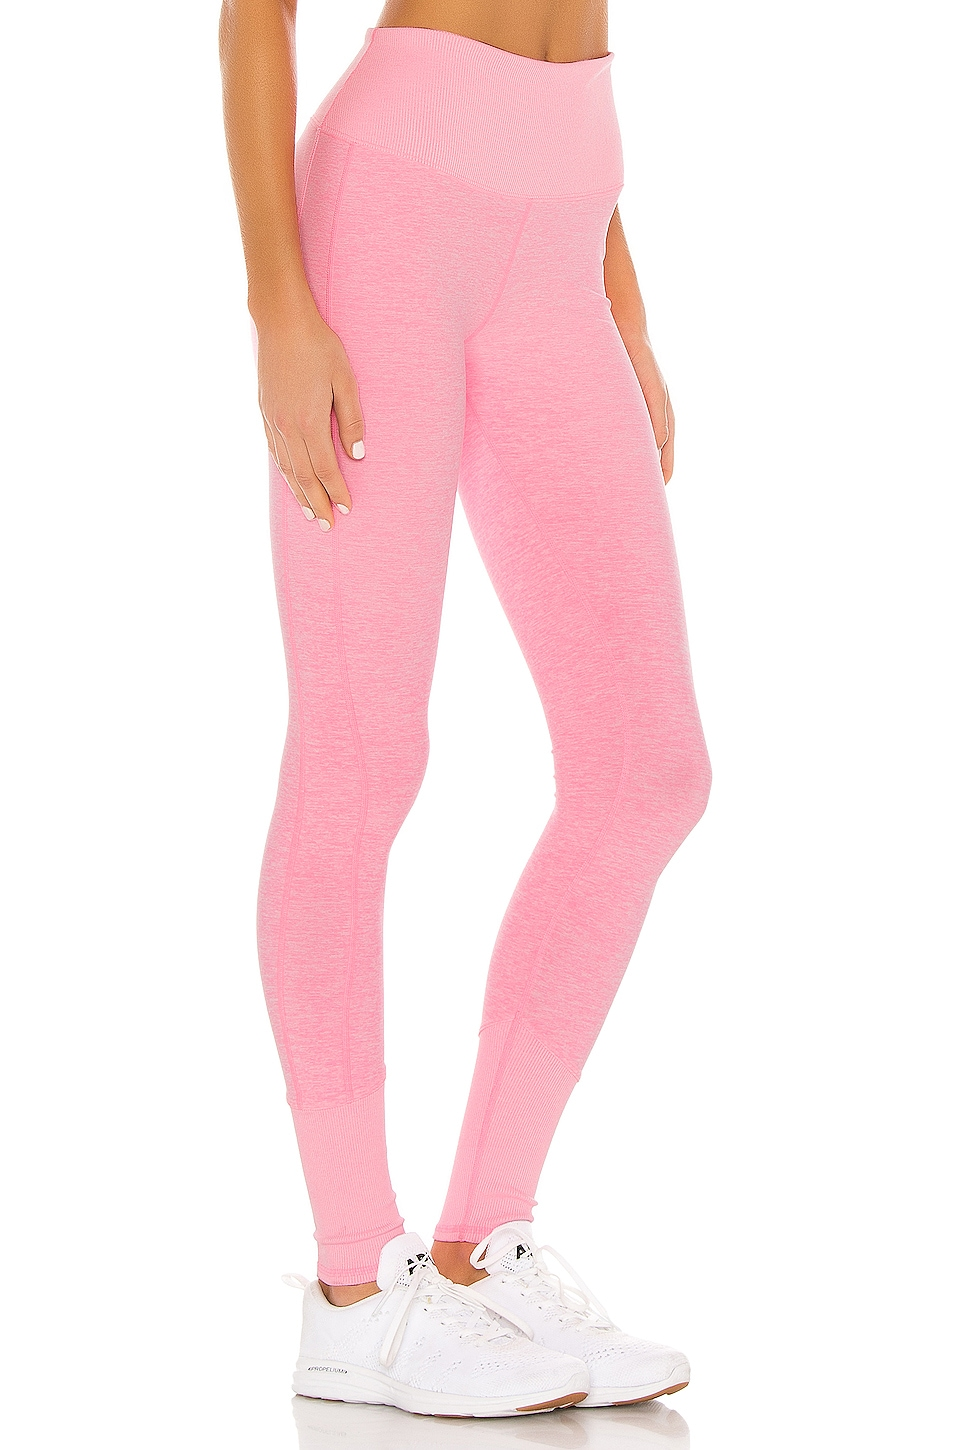 High Waist Lounge Legging, view 2, click to view large image.